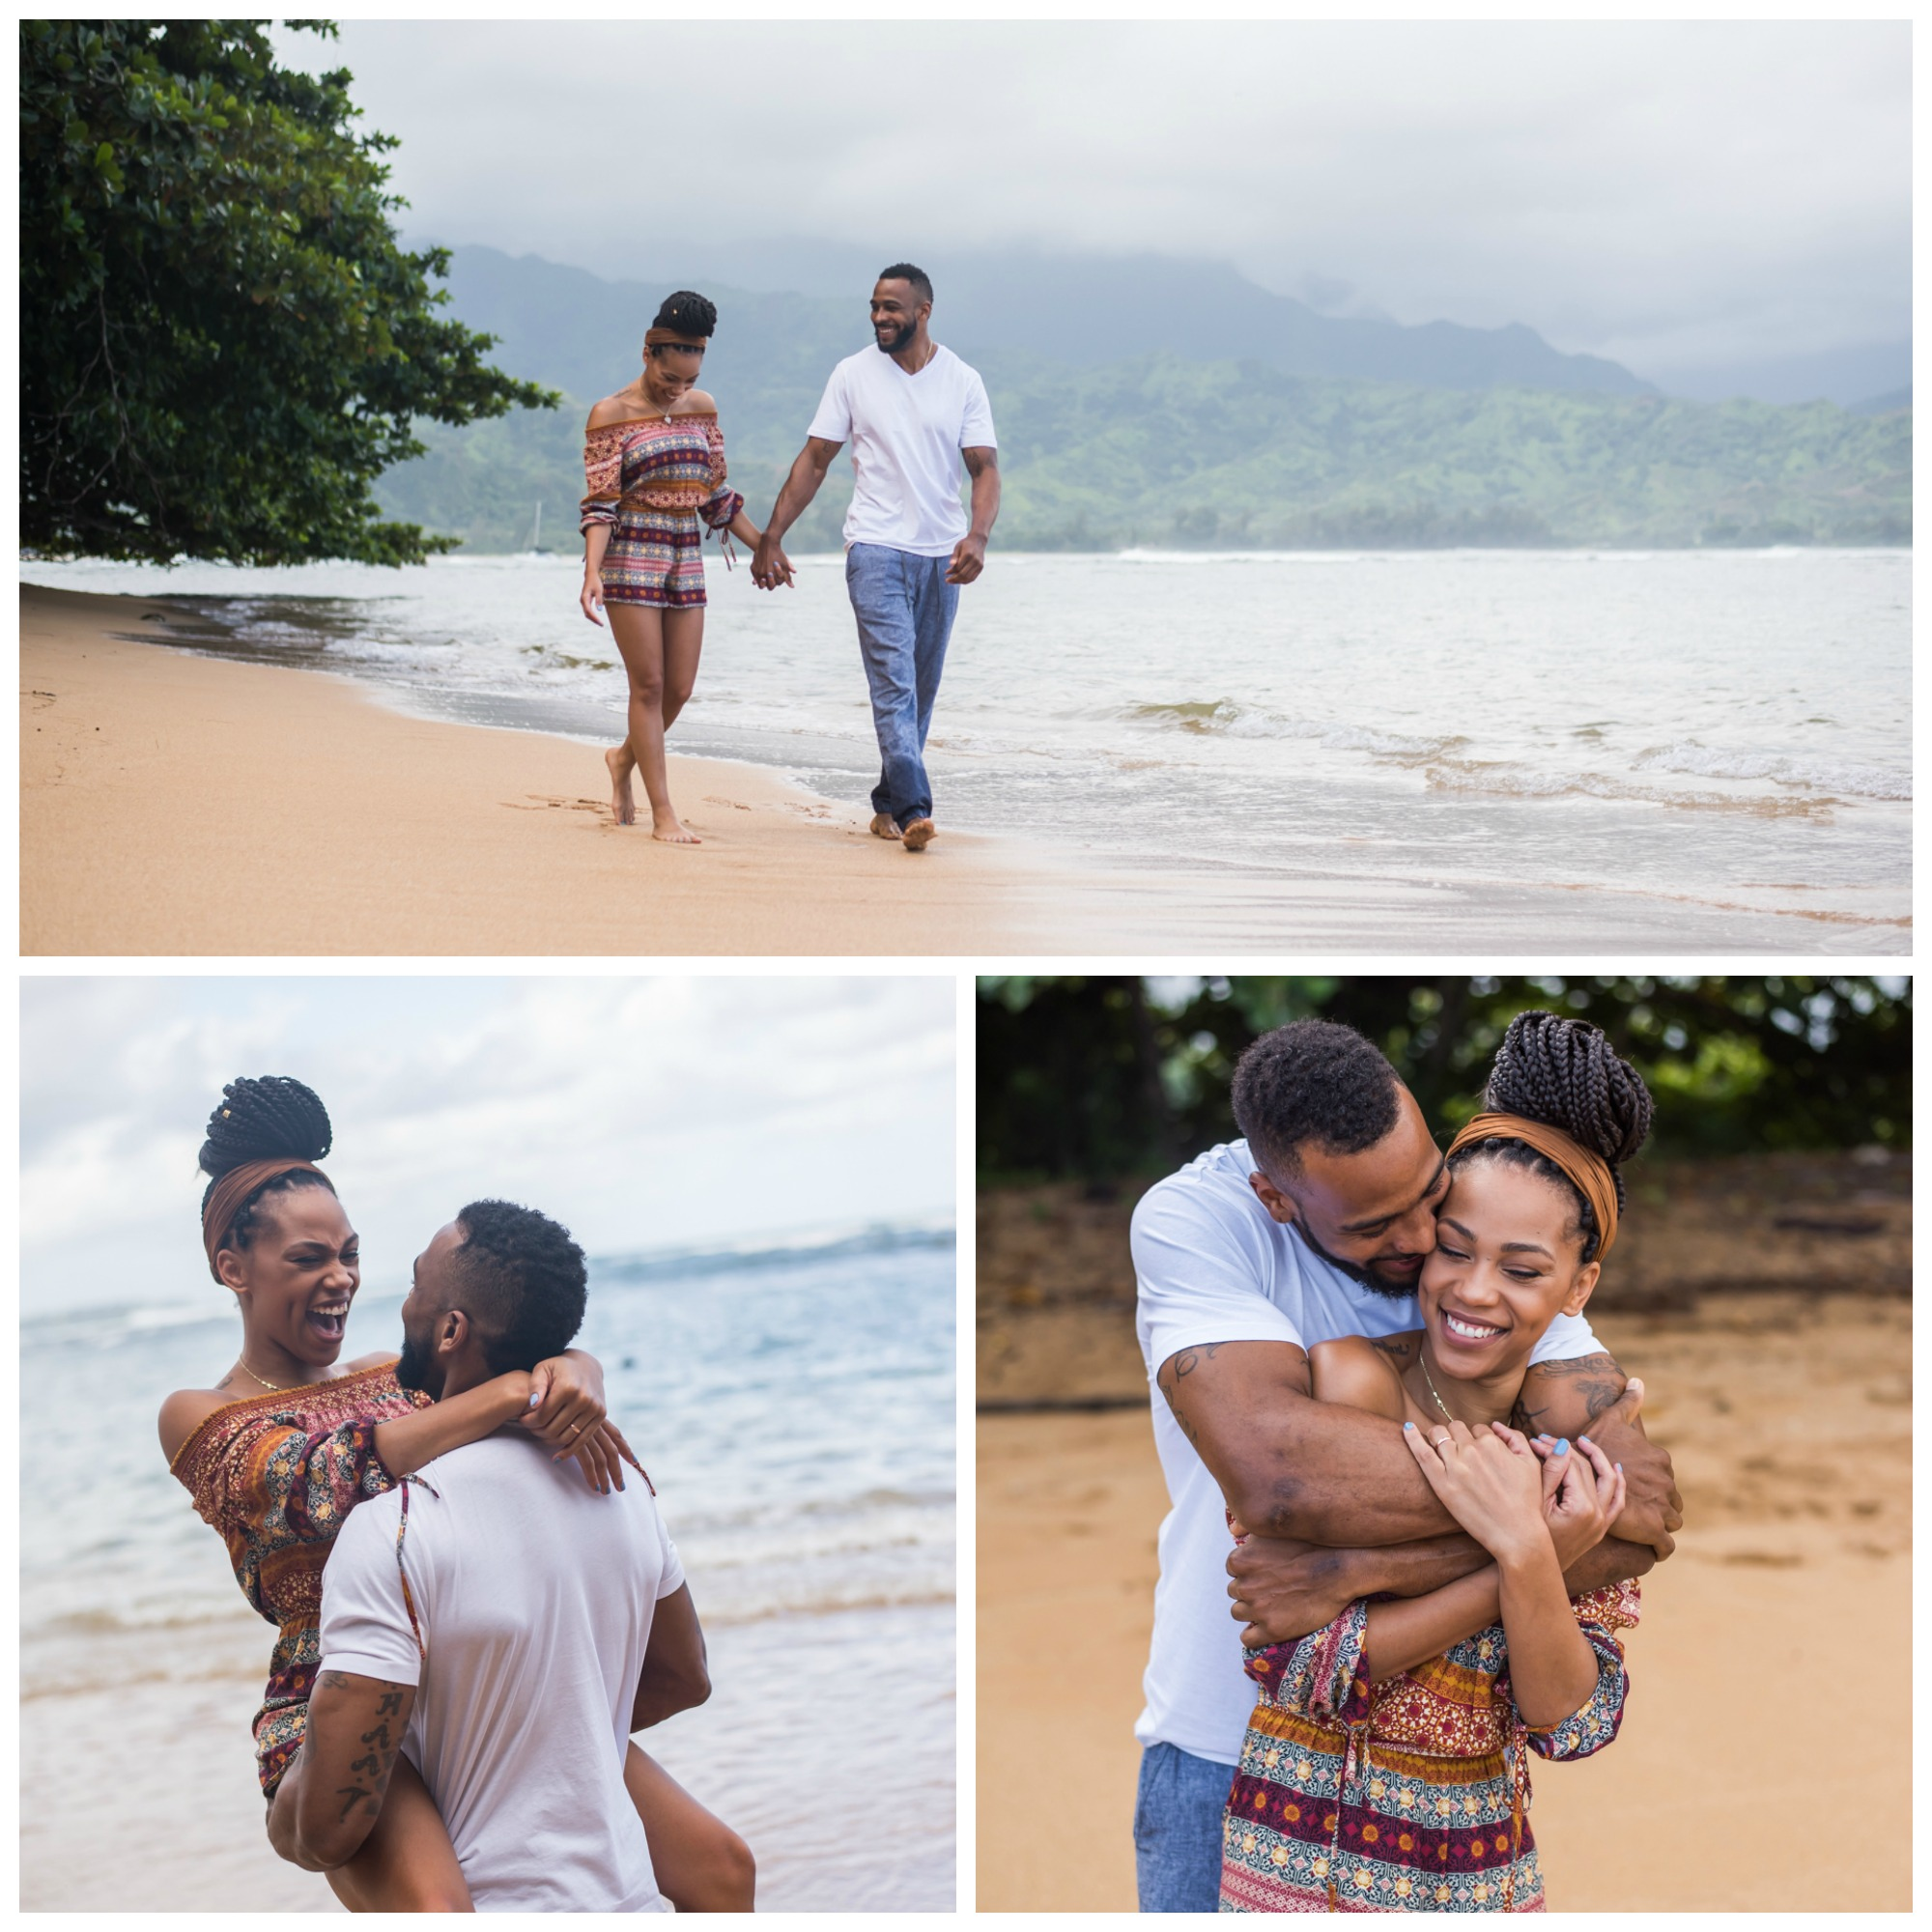 Pacific Dream Photography - Hawaii Photographer - Portrait Photographer - Engagement Photographer - Kauai Photographer - Honeymoon Photographer Kauai